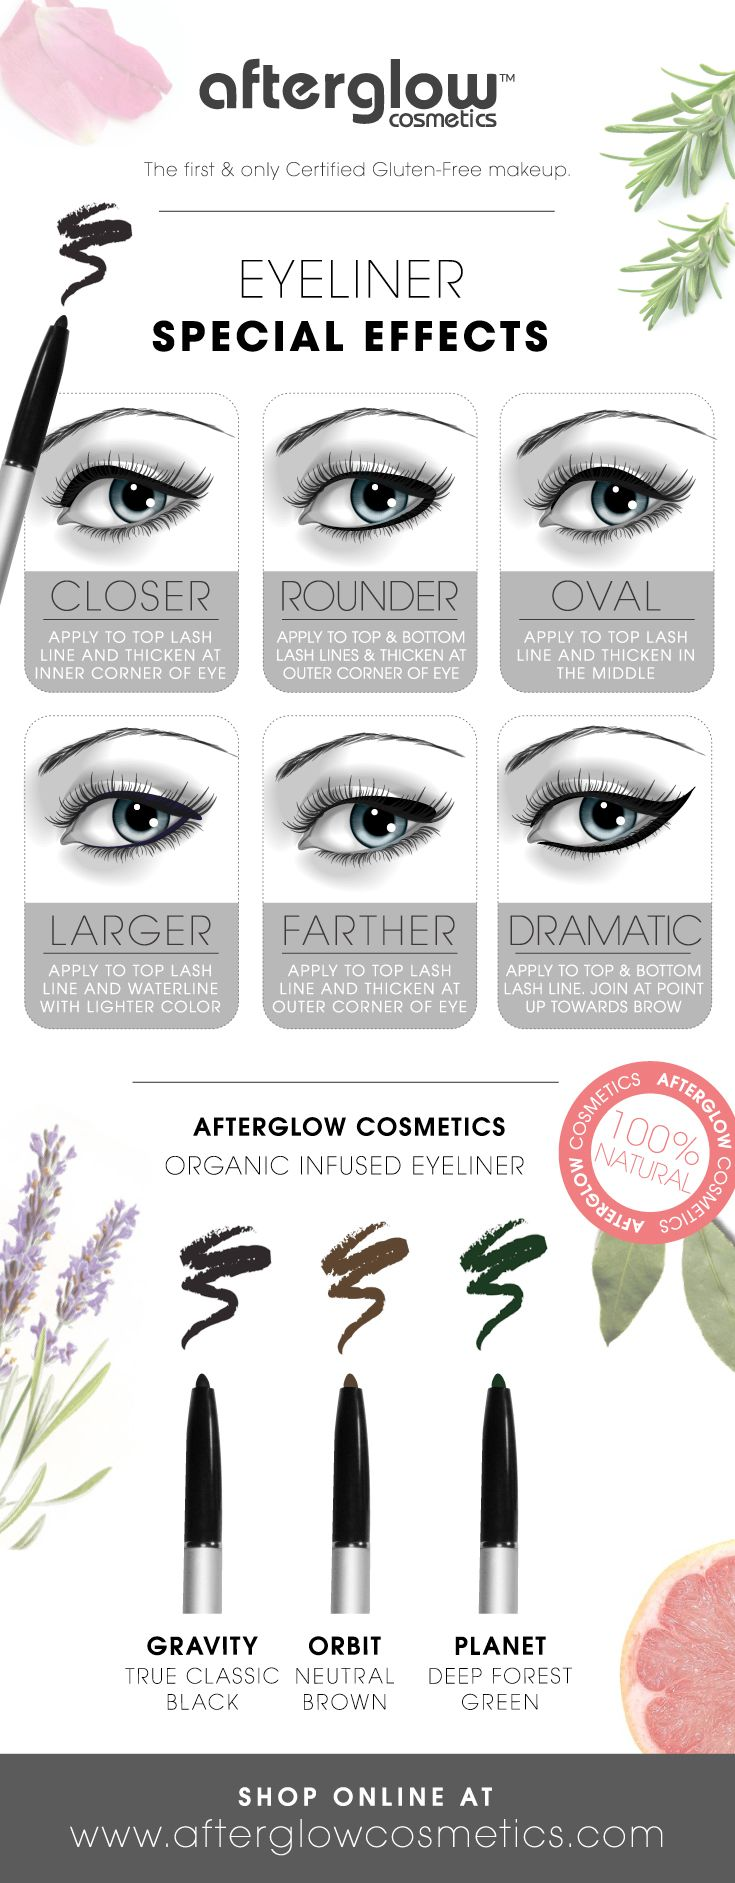 Here's how to apply eyeliner for your eye type and create some cool eyeliner effects. Be sure to check out our Organic Infused Eyeliner at http://afterglowcosmetics.com/organic_pencil_eye_liner/